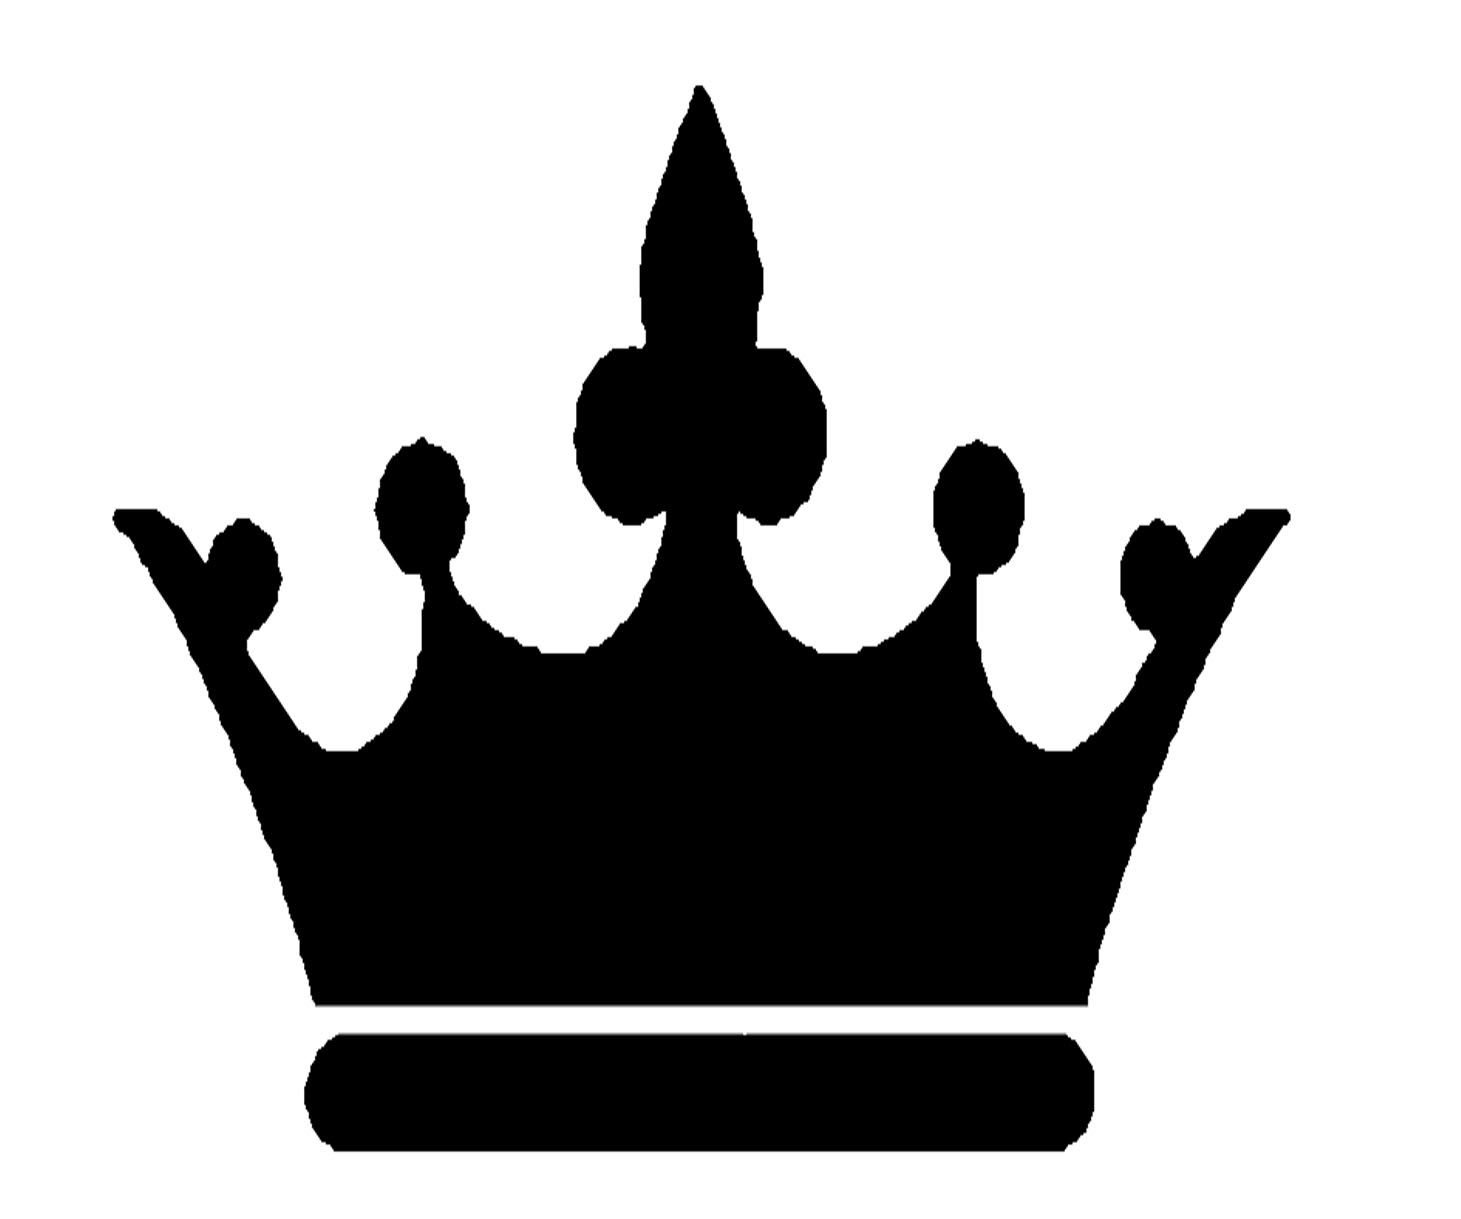 crowns silhouette at getdrawings com free for personal use crowns rh getdrawings com free crown clip art images free crown clip art images